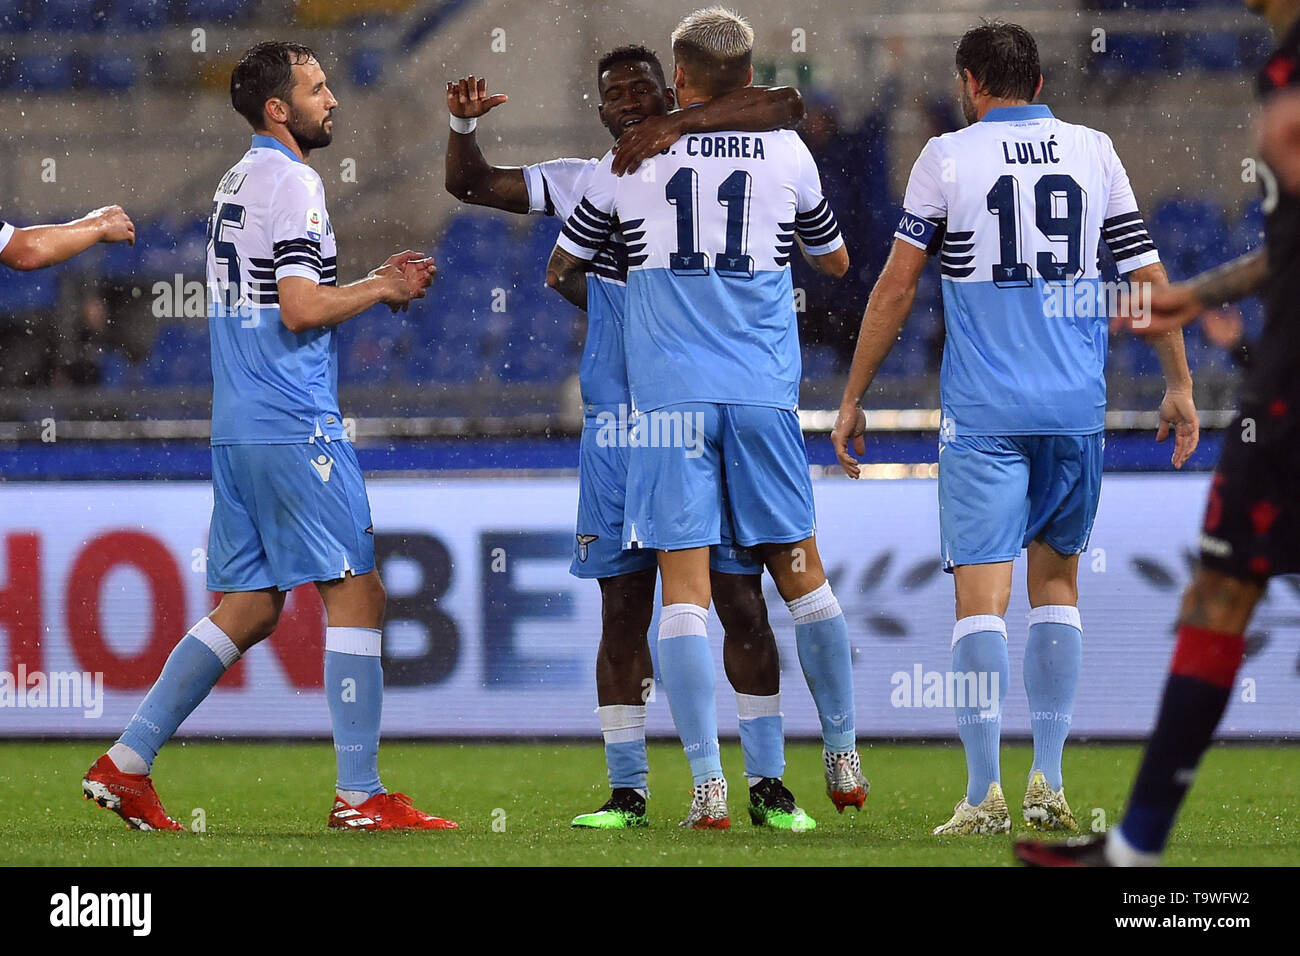 Rome, Italy. 21st May, 2019. Serie A Lazio vs Bologna Stadio Olimpico.Rome 20-05-2019 In the picture Bartolomeu Jacinto Quissanga Bastos rejoices after scoring the goal Foto Fotografo01 Credit: Independent Photo Agency/Alamy Live News - Stock Image